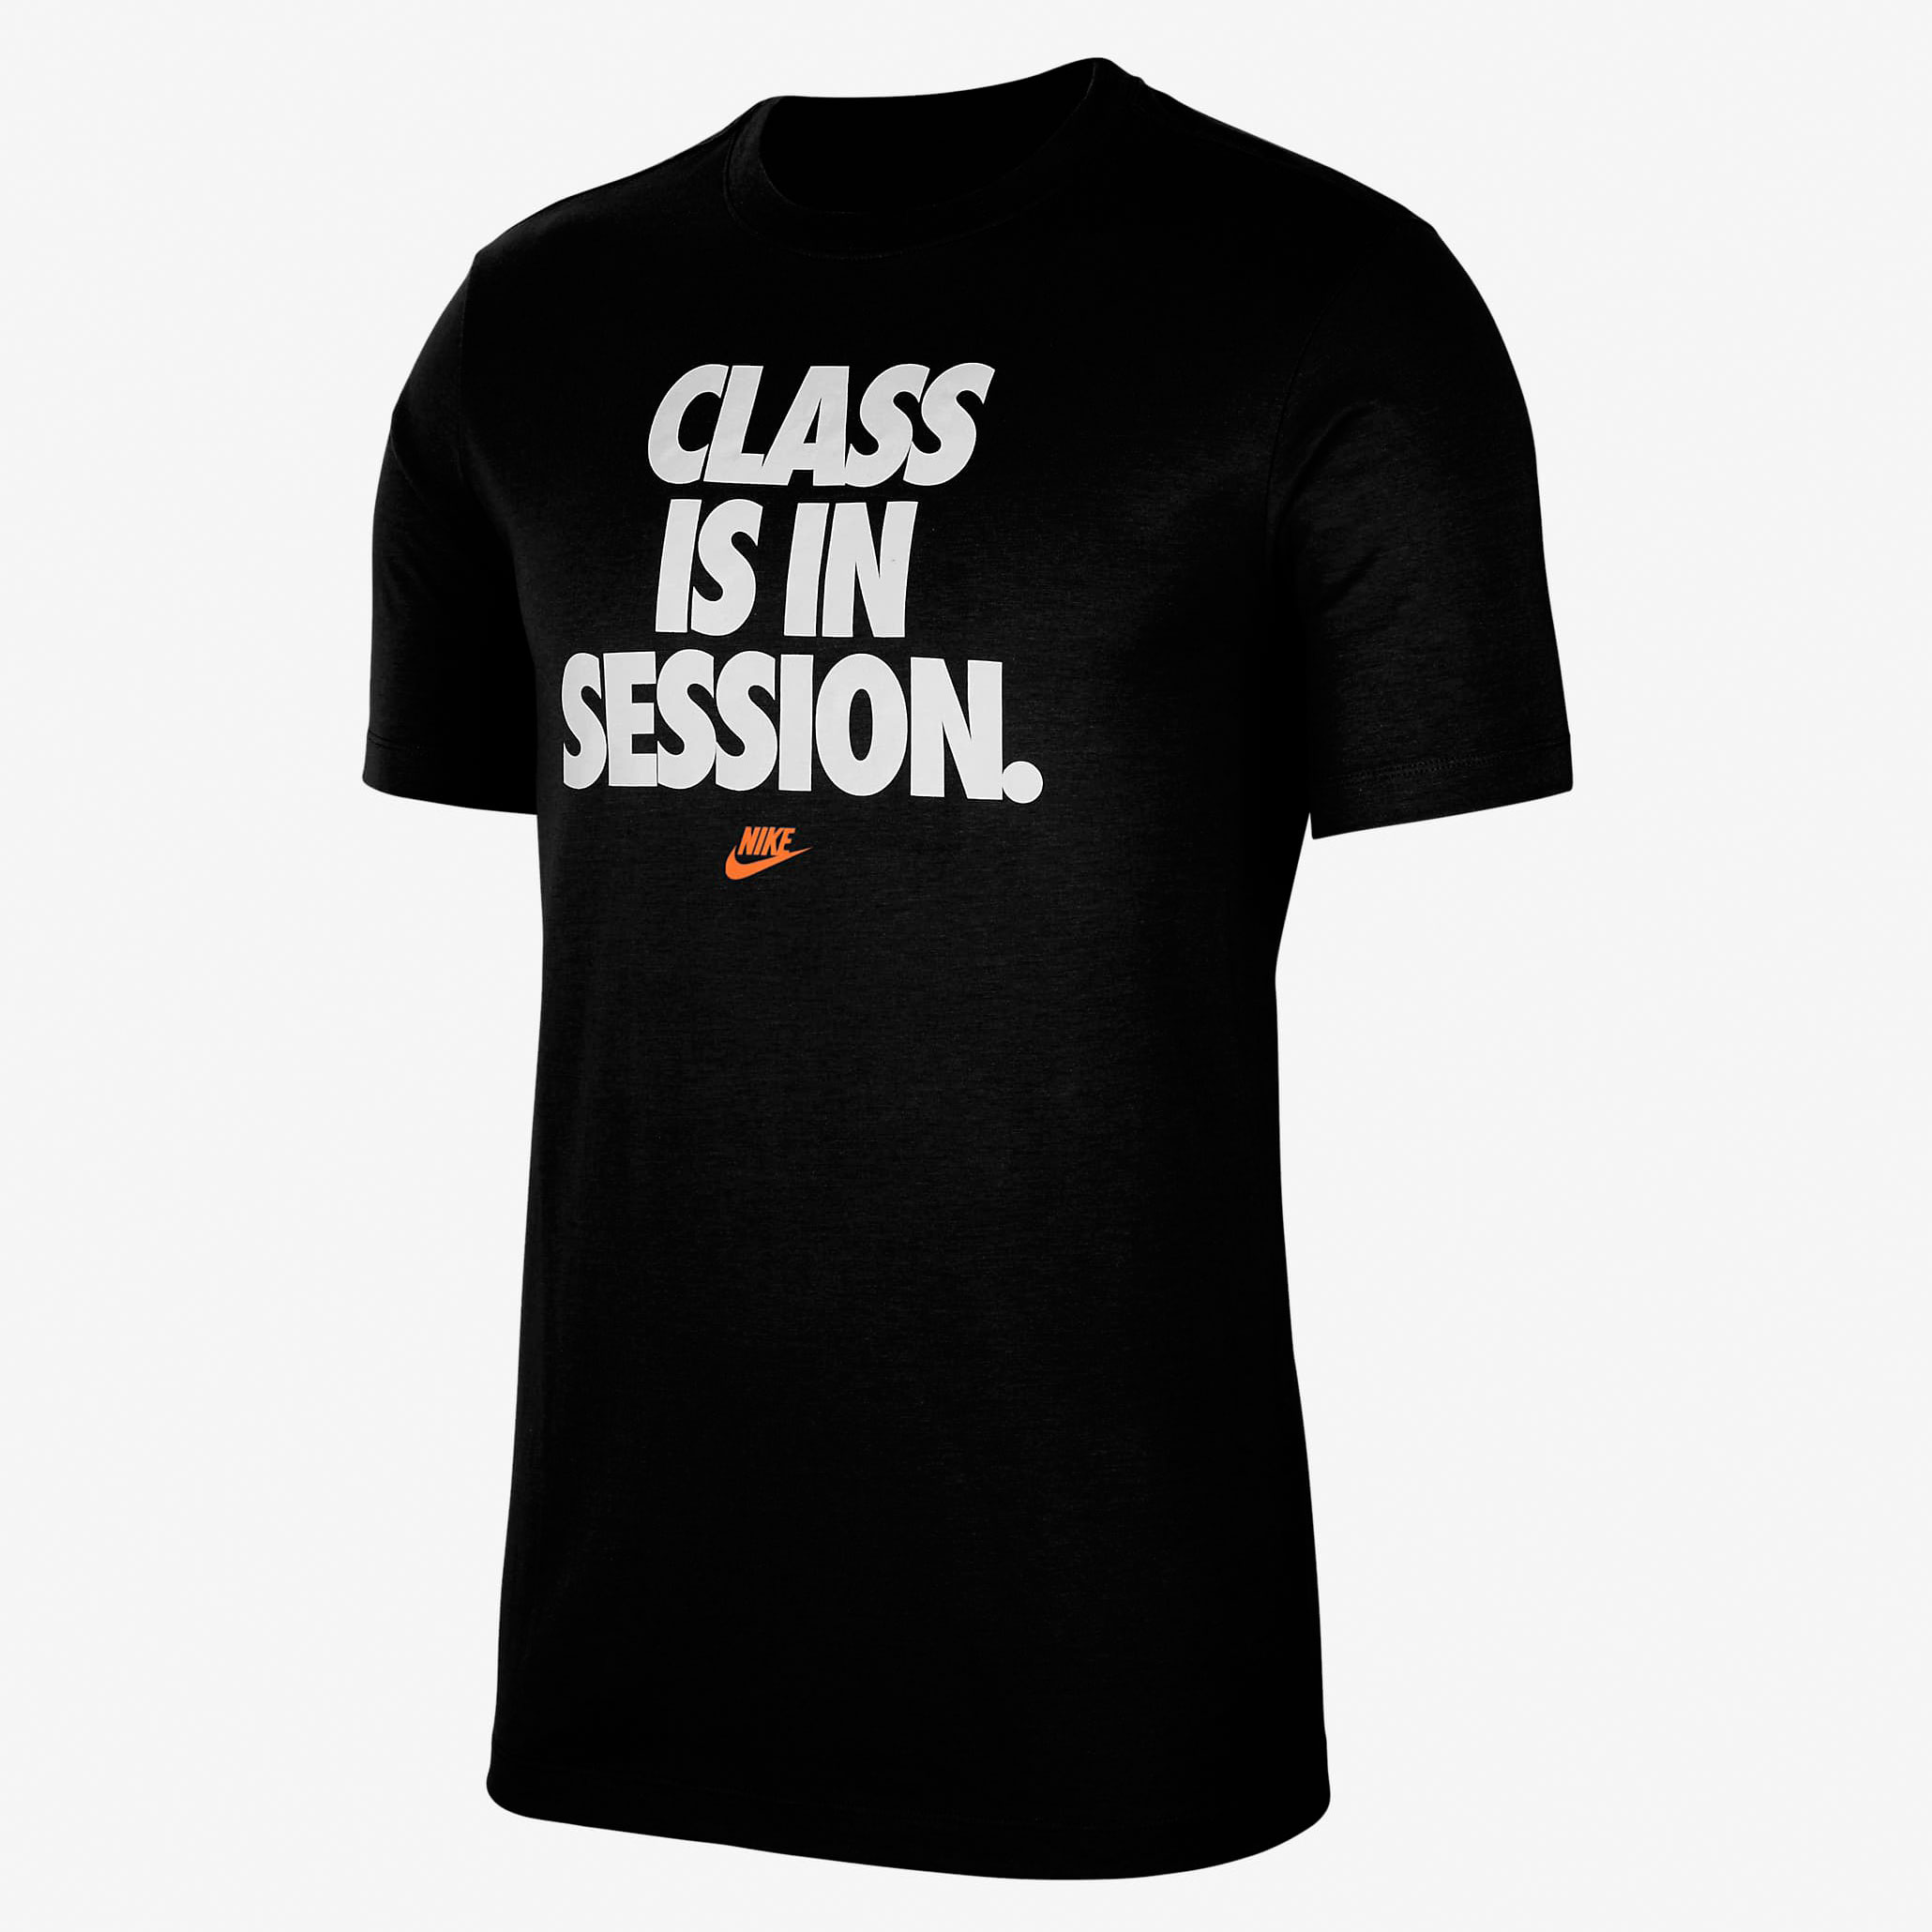 nike-class-is-in-session-shirt-black